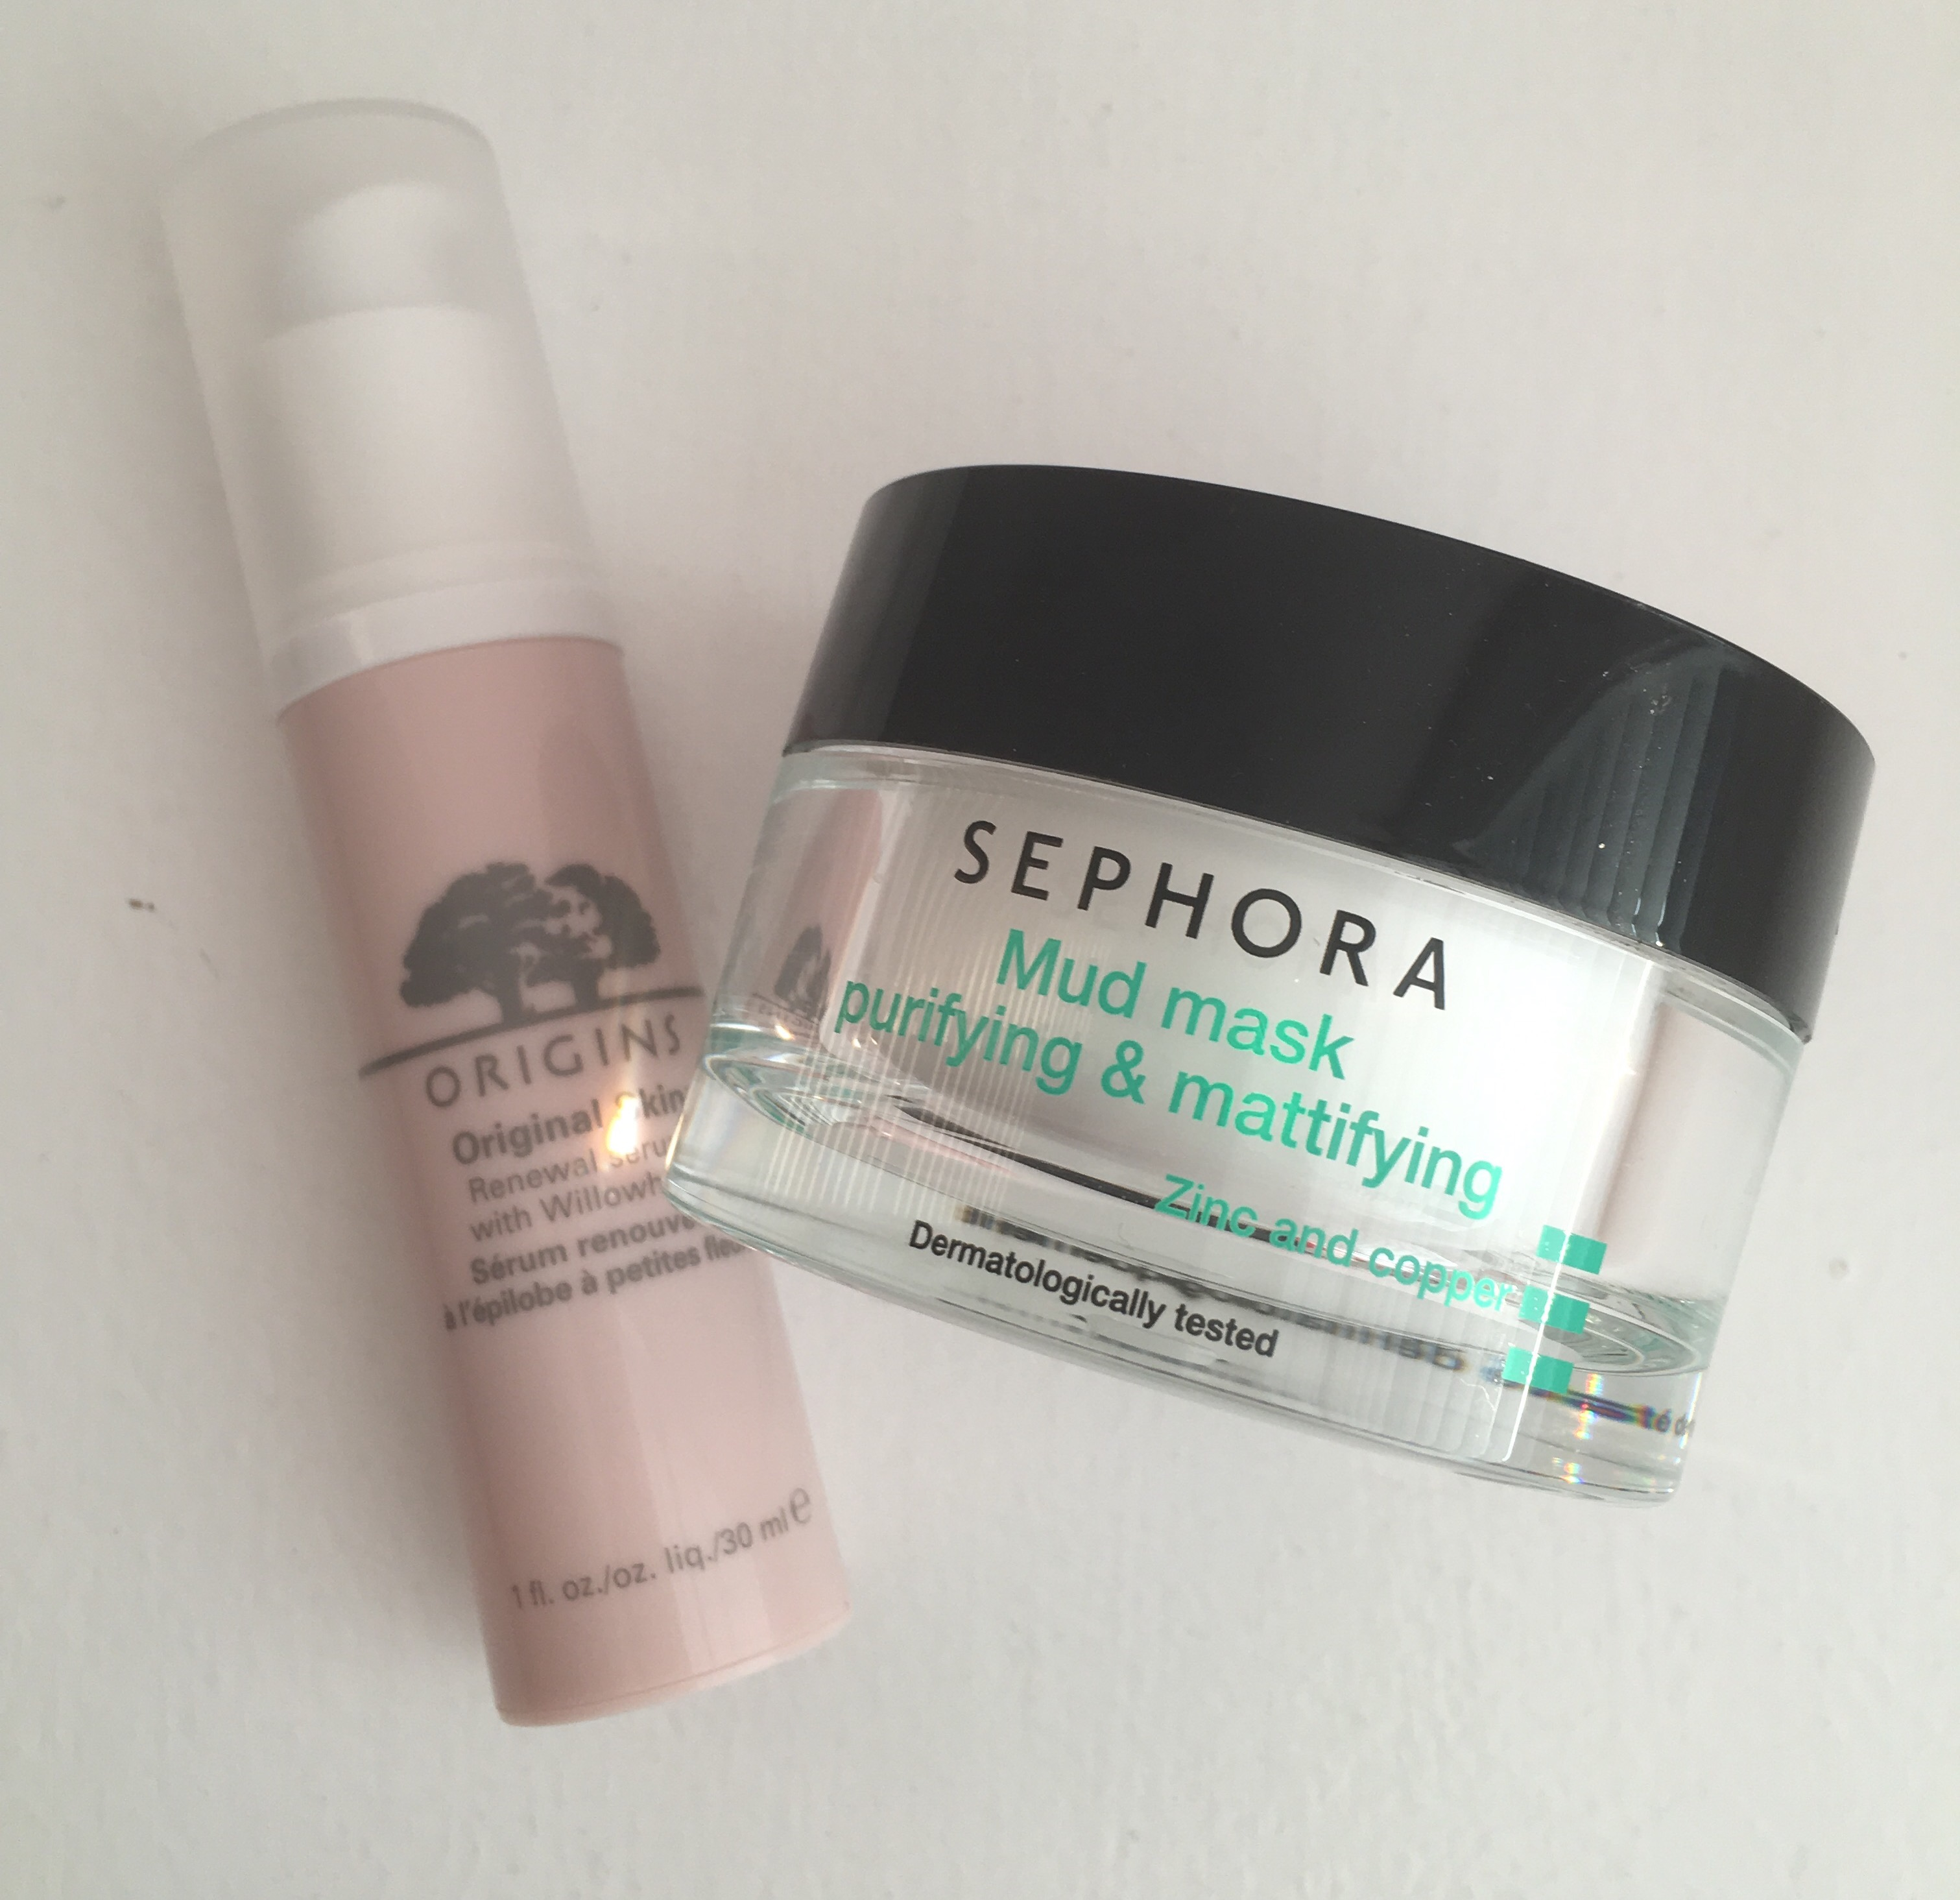 Mud Mask Purifying & Mattifying by Sephora Collection #10